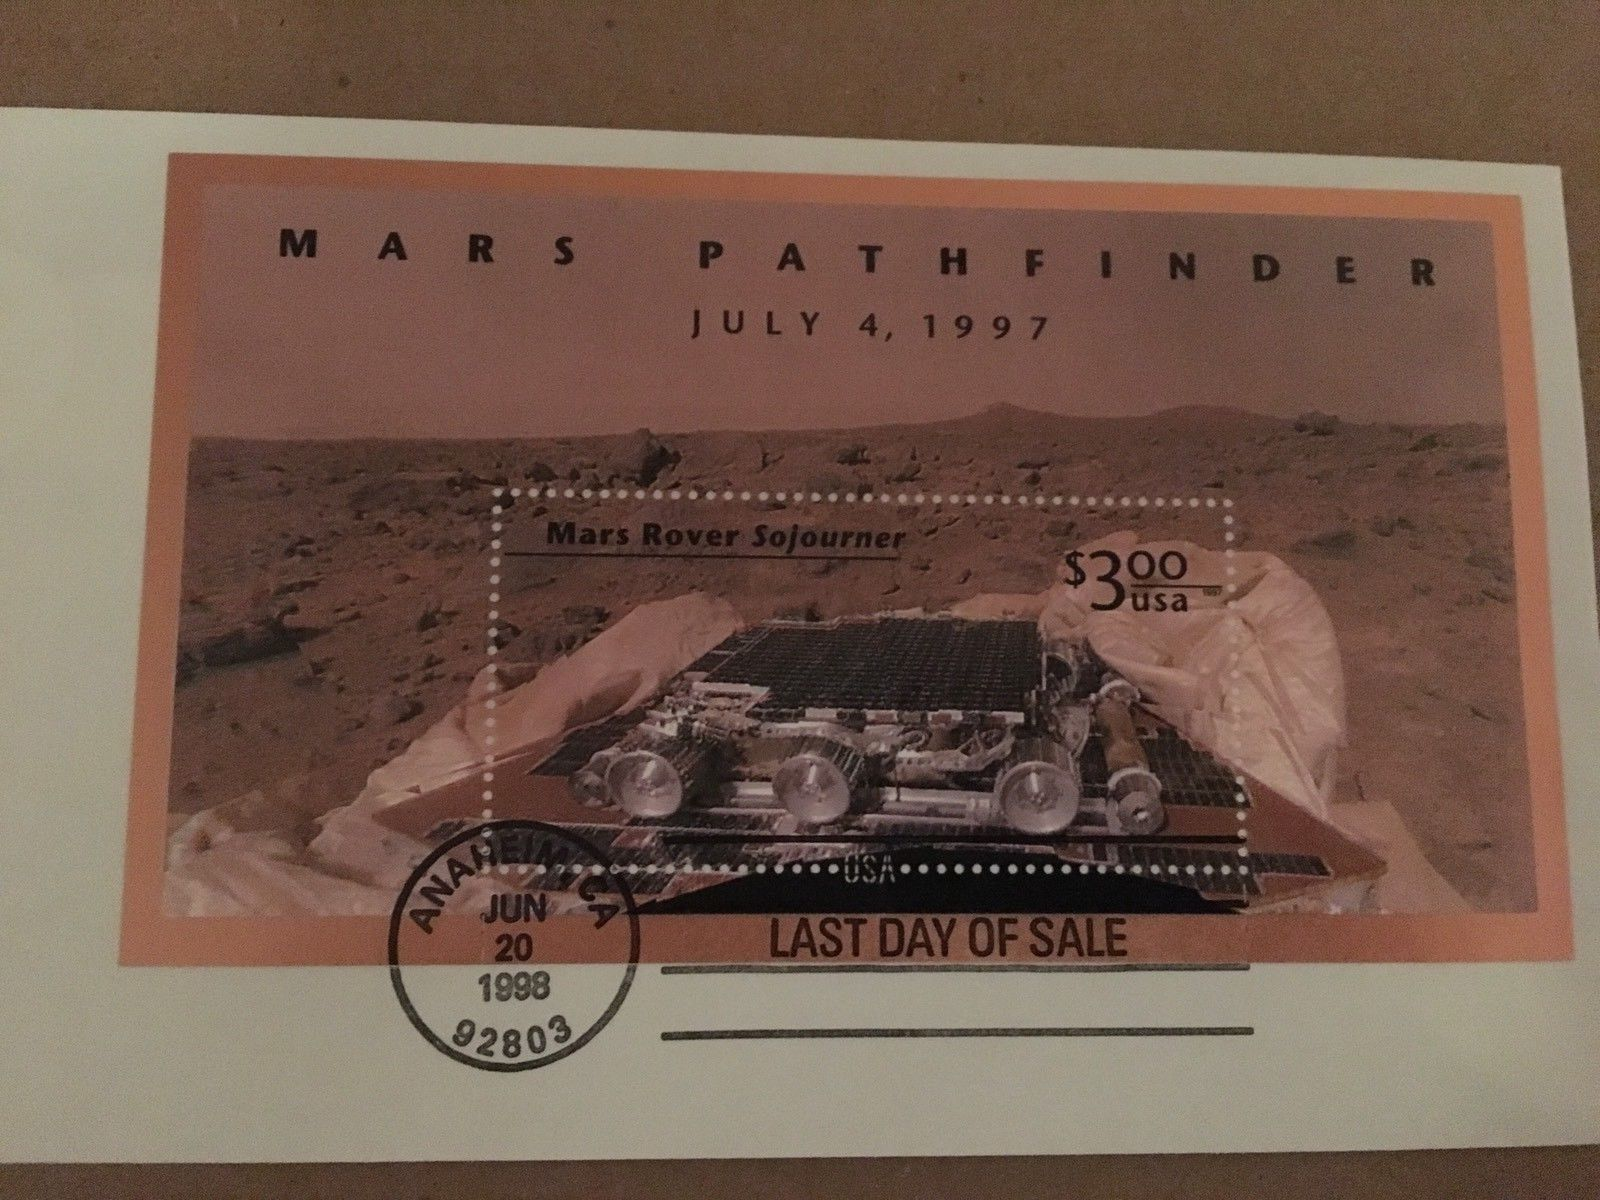 Mars Pathfinder Last Day of Sale  June 20, 1998 USPS $3.00 Stamp